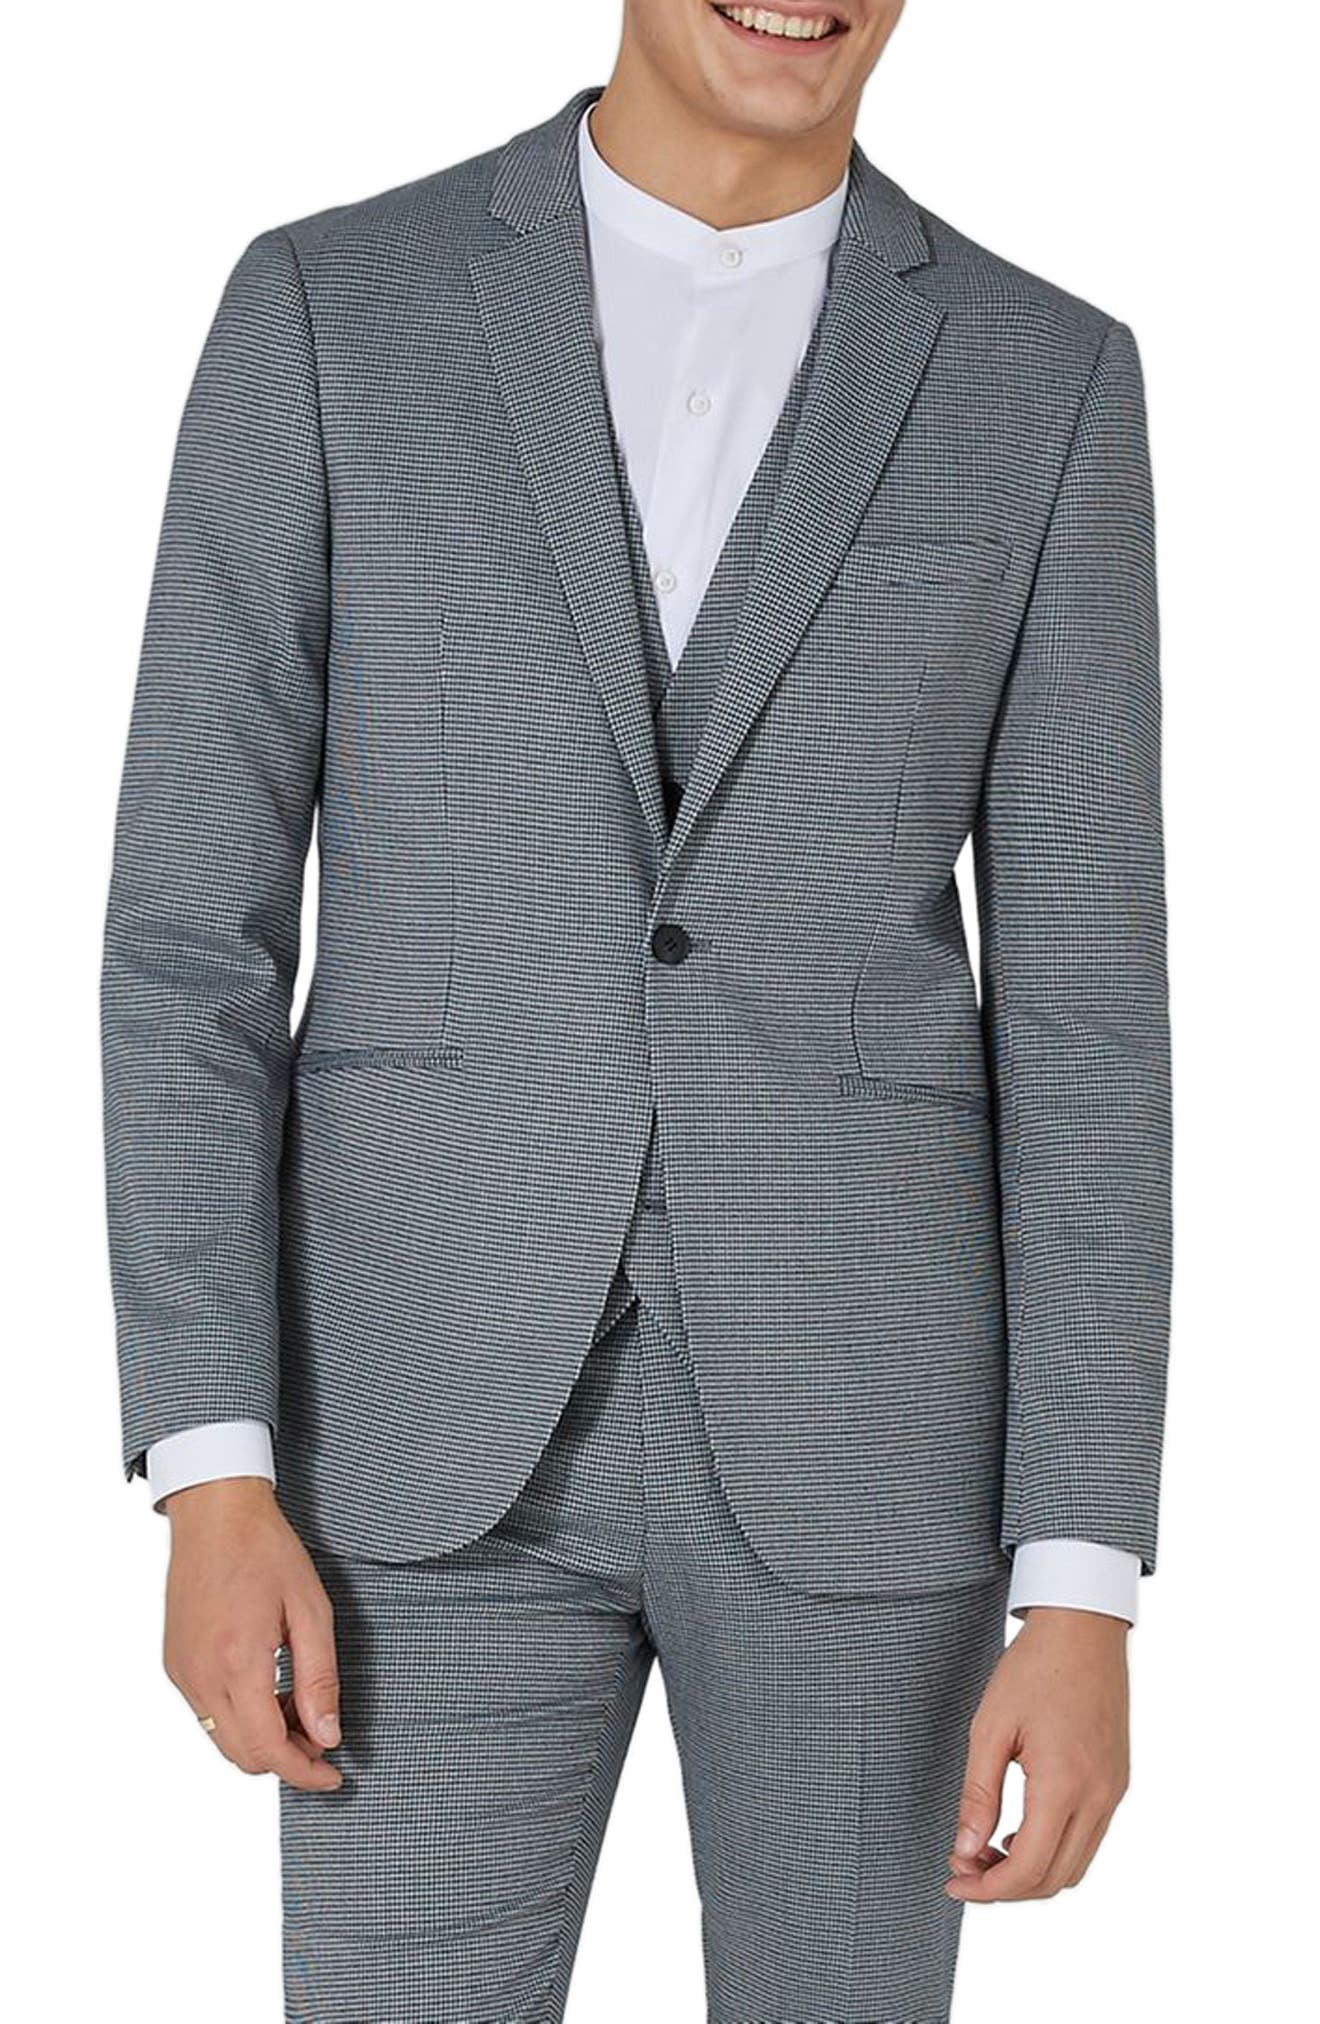 Alternate Image 1 Selected - Topman Skinny Fit Houndstooth Suit Jacket